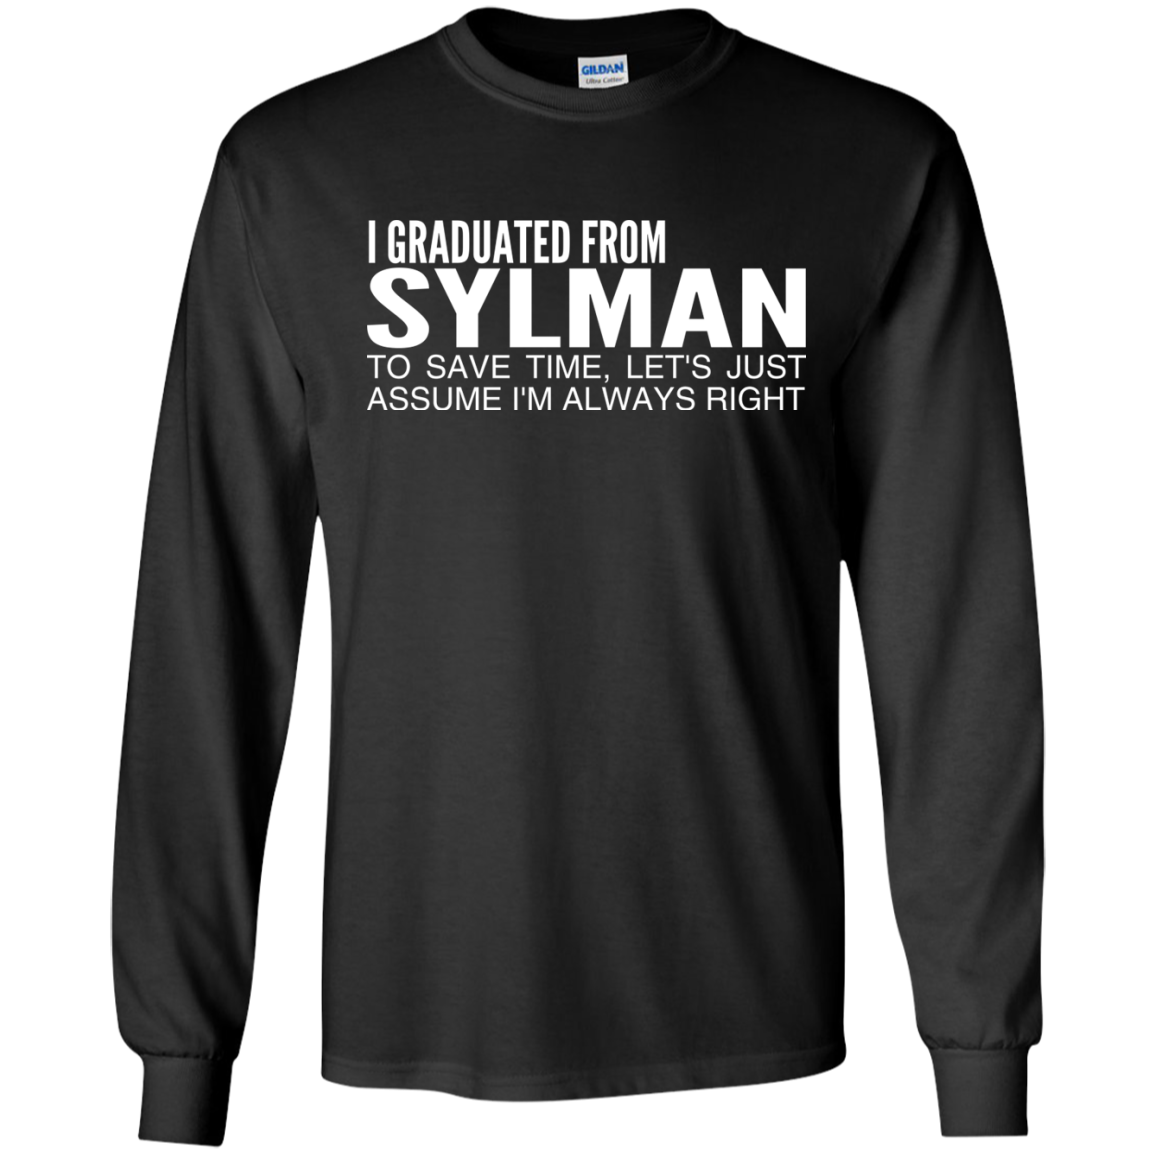 I Graduated From Slyman To Save Time Lets Just Assume Im Always Right Long Sleeve Tees